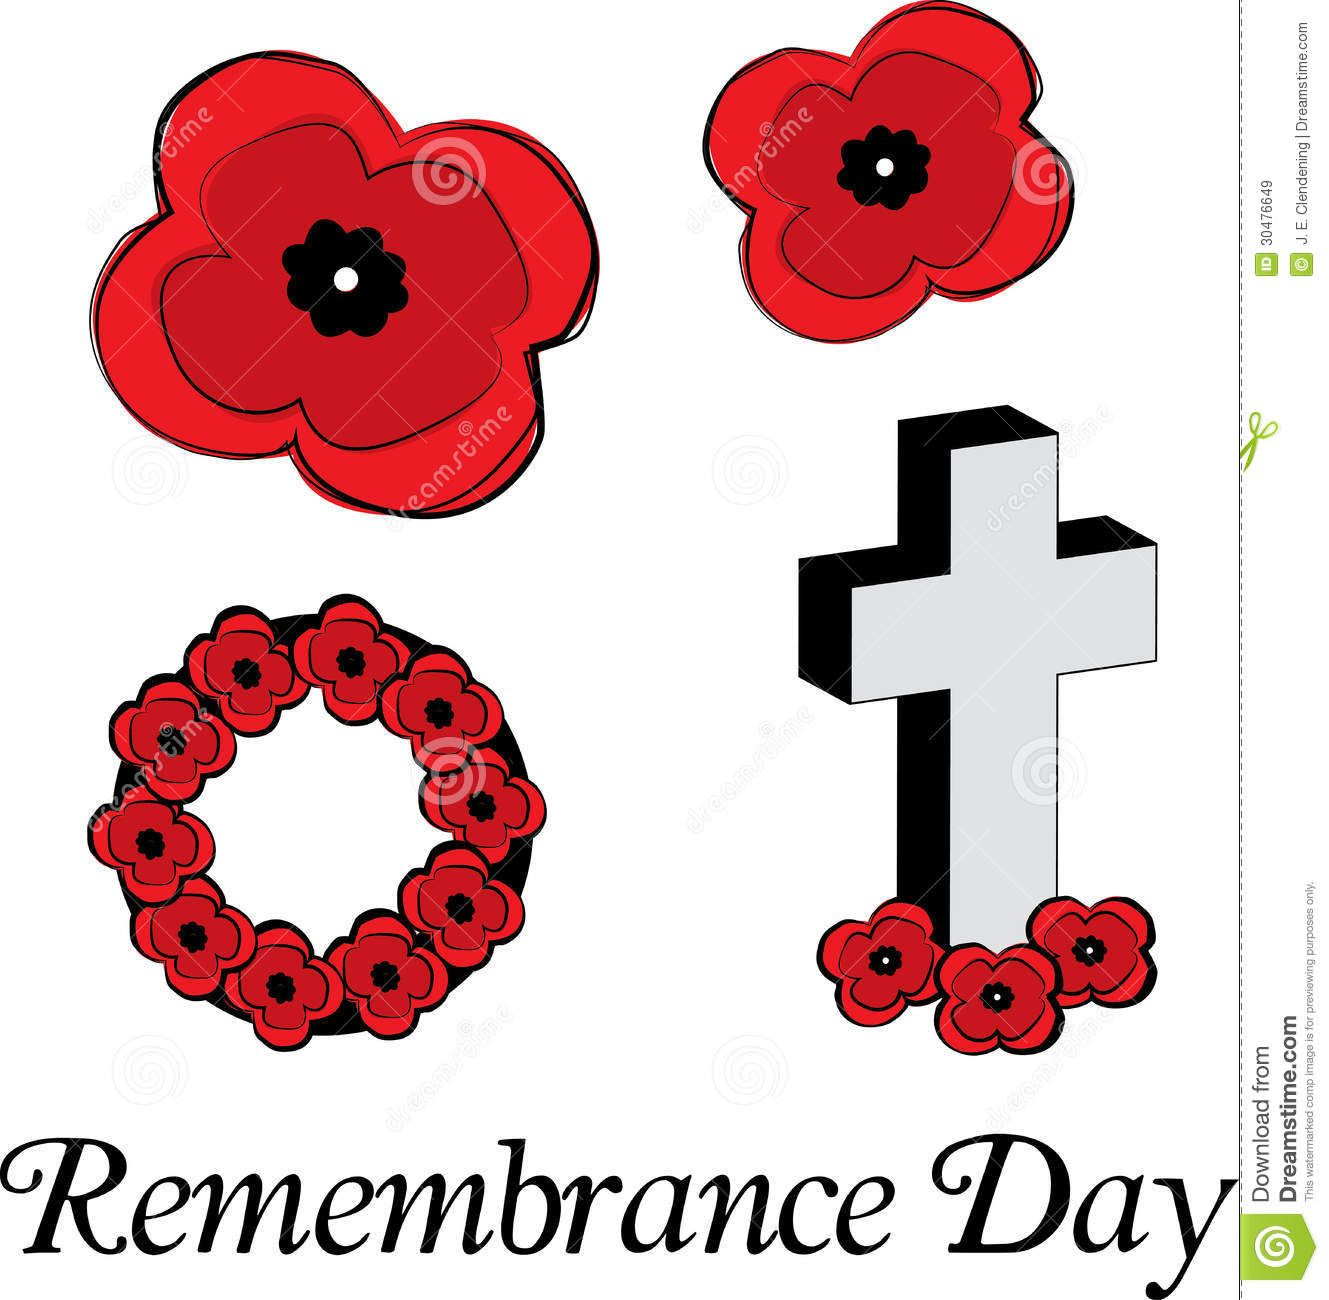 Remembrance Day Poppy Flowers Clipart Poppies And Scottish